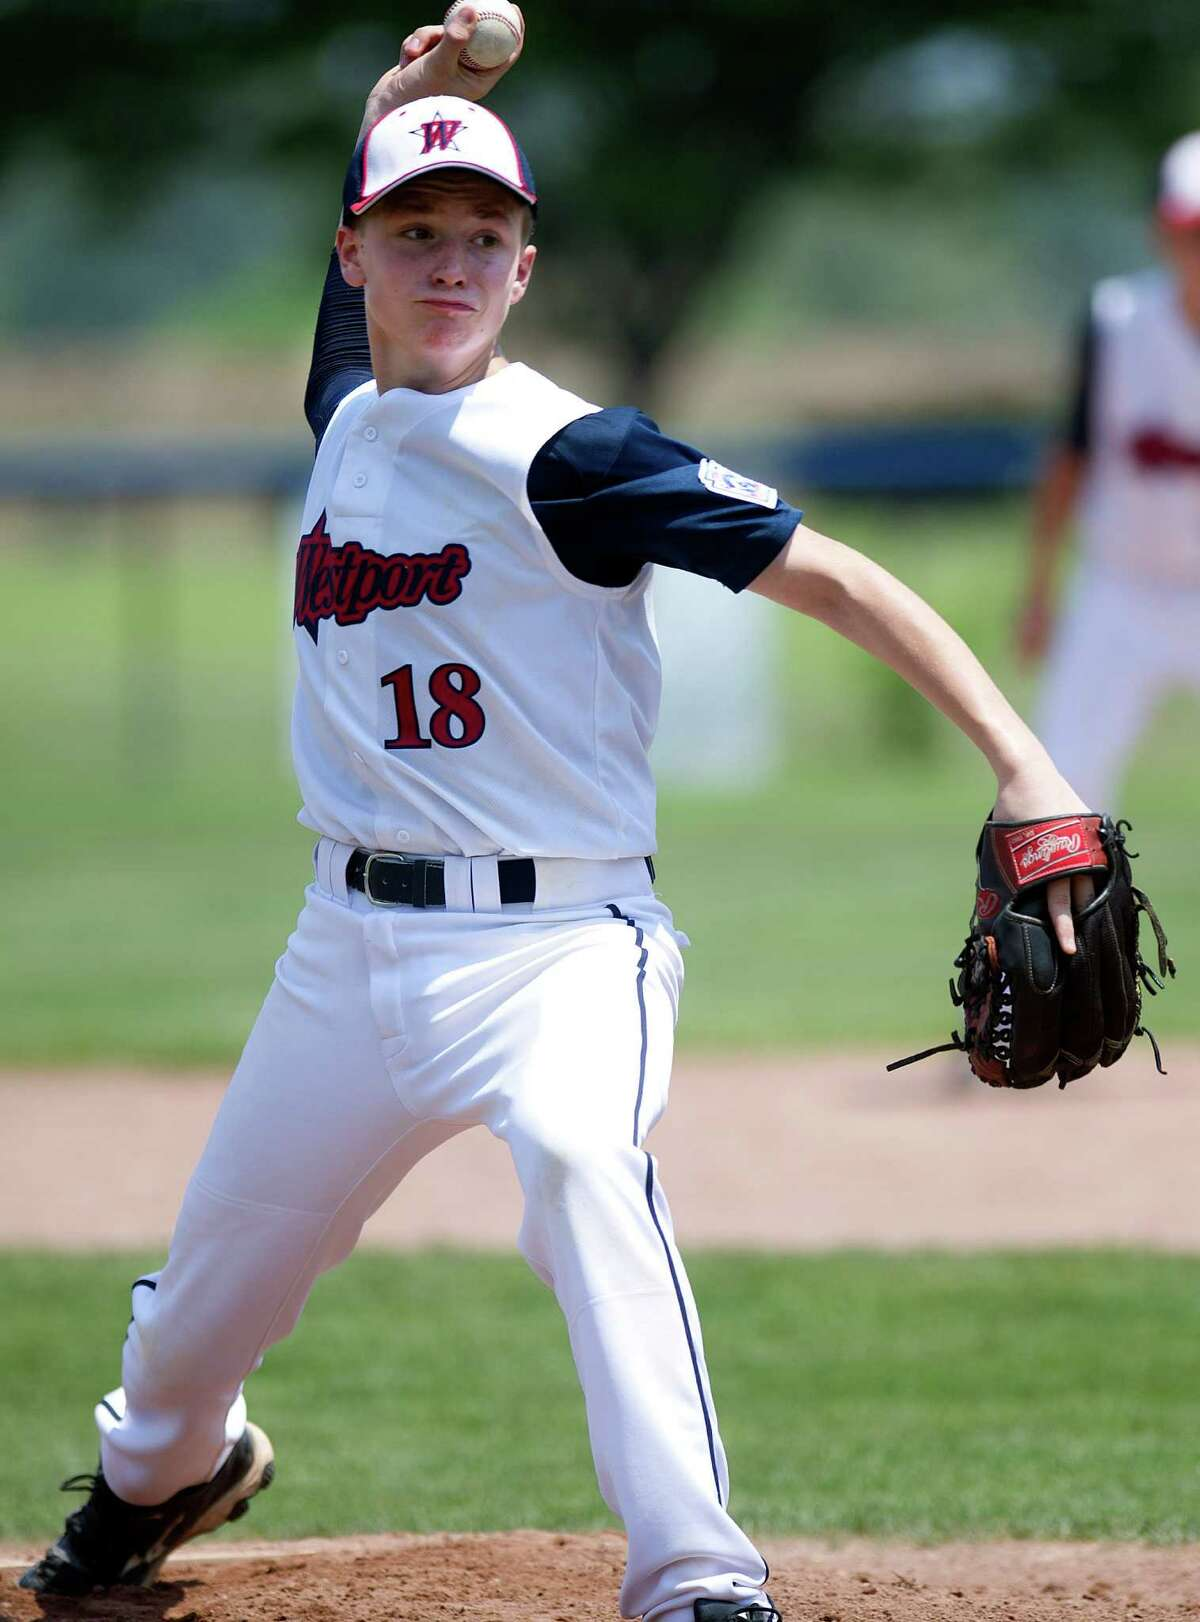 Westport's Harry Azadian pitches during Saturday's Little League Section 1 tournament game against Orange at Frank Noto Field in West Beach Park in Stamford, Conn., on July 20, 2013.